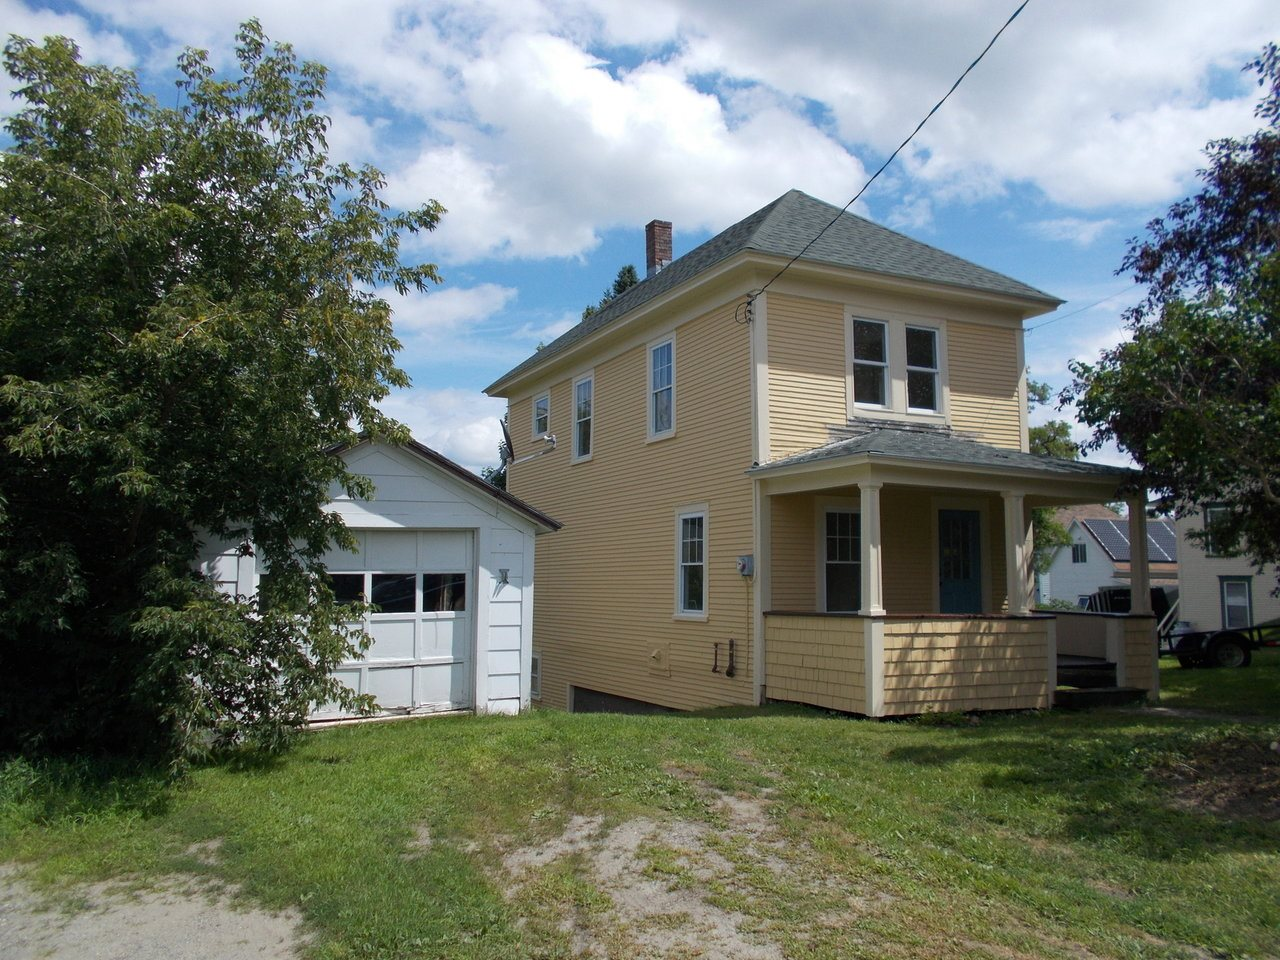 Sold property in Troy